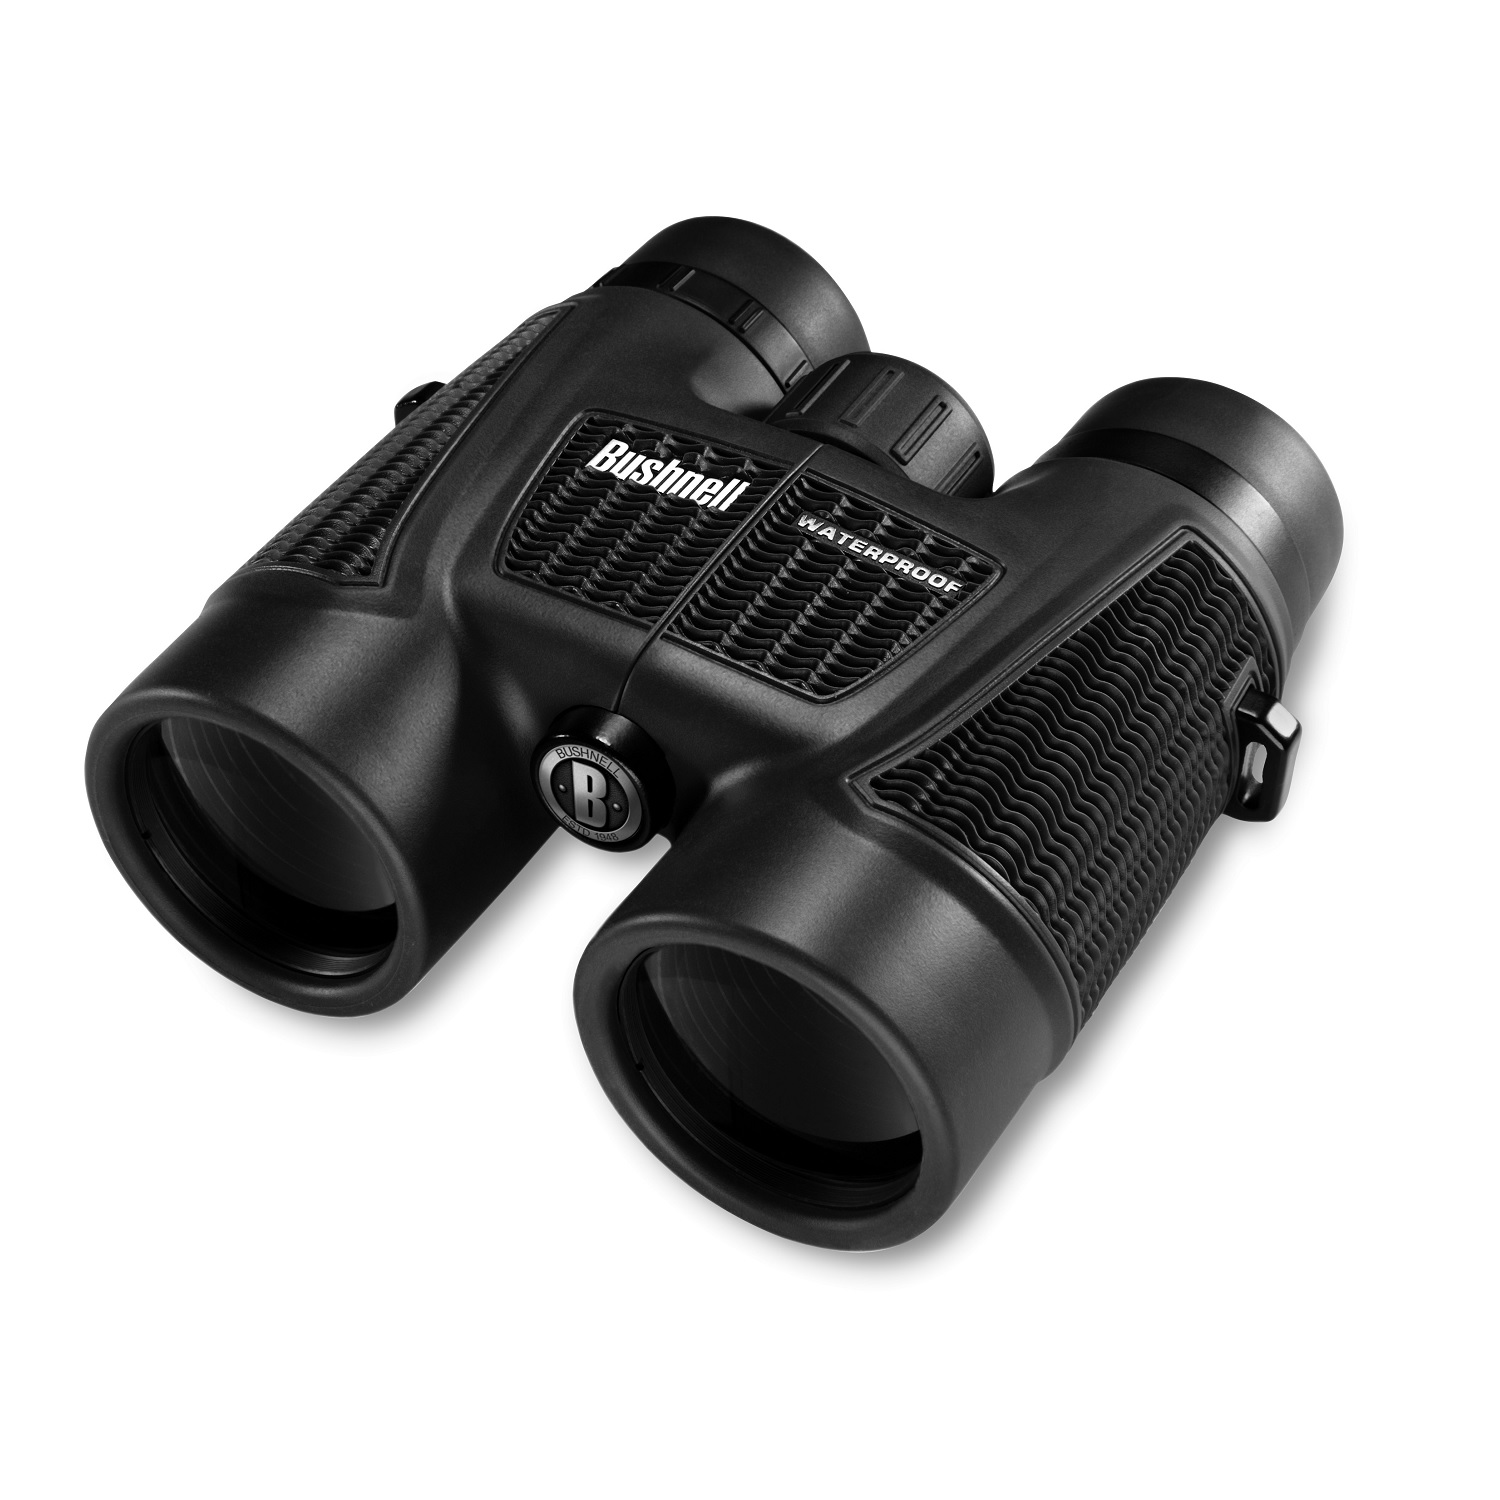 Bushnell H2O Waterproof Binocular 10X42 BAK-4-Black by Bushnell